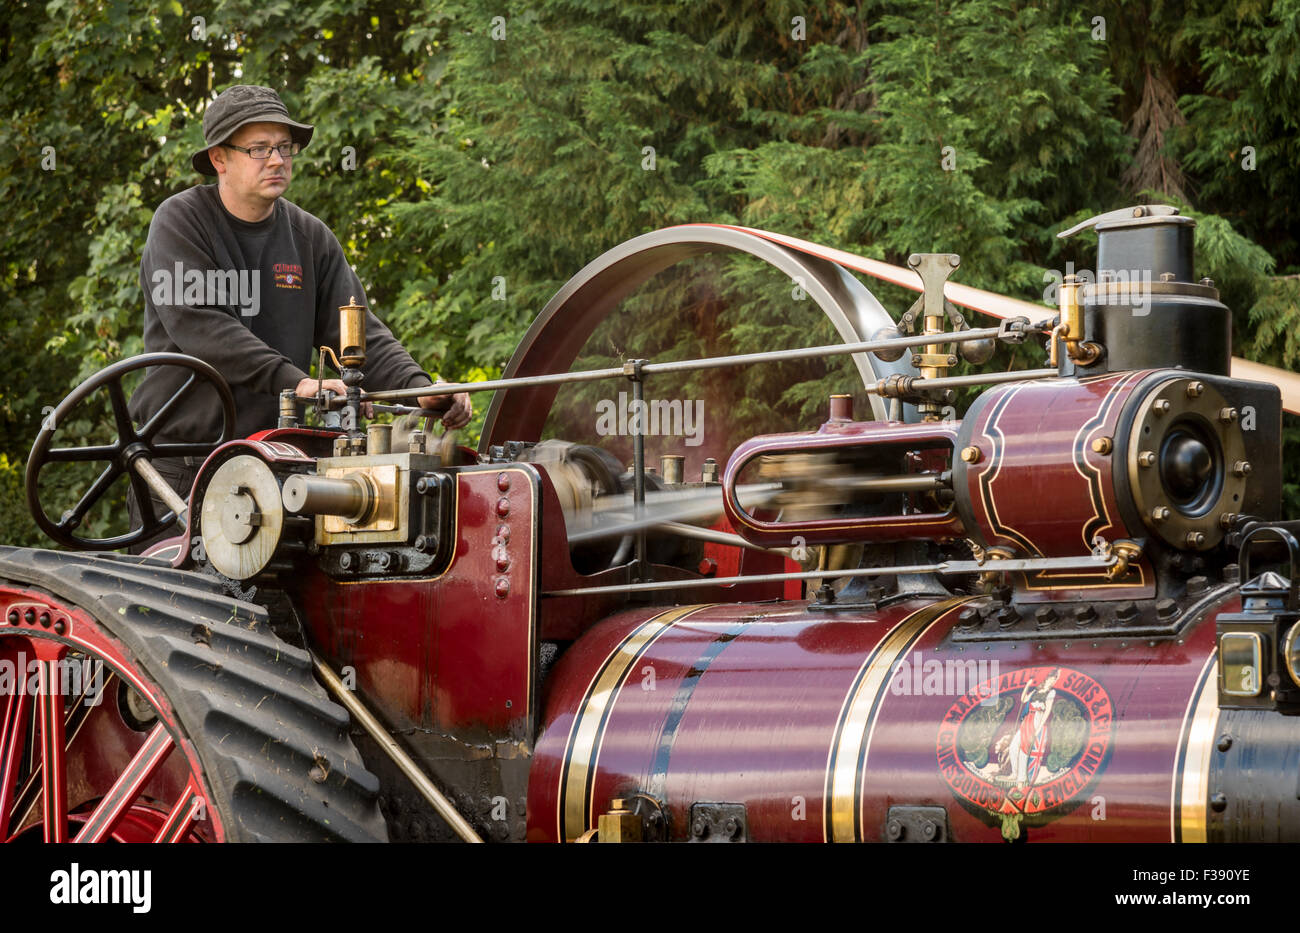 Detail of Vintage Steam Traction Locomotive showing movement of piston & Flywheel - Stock Image